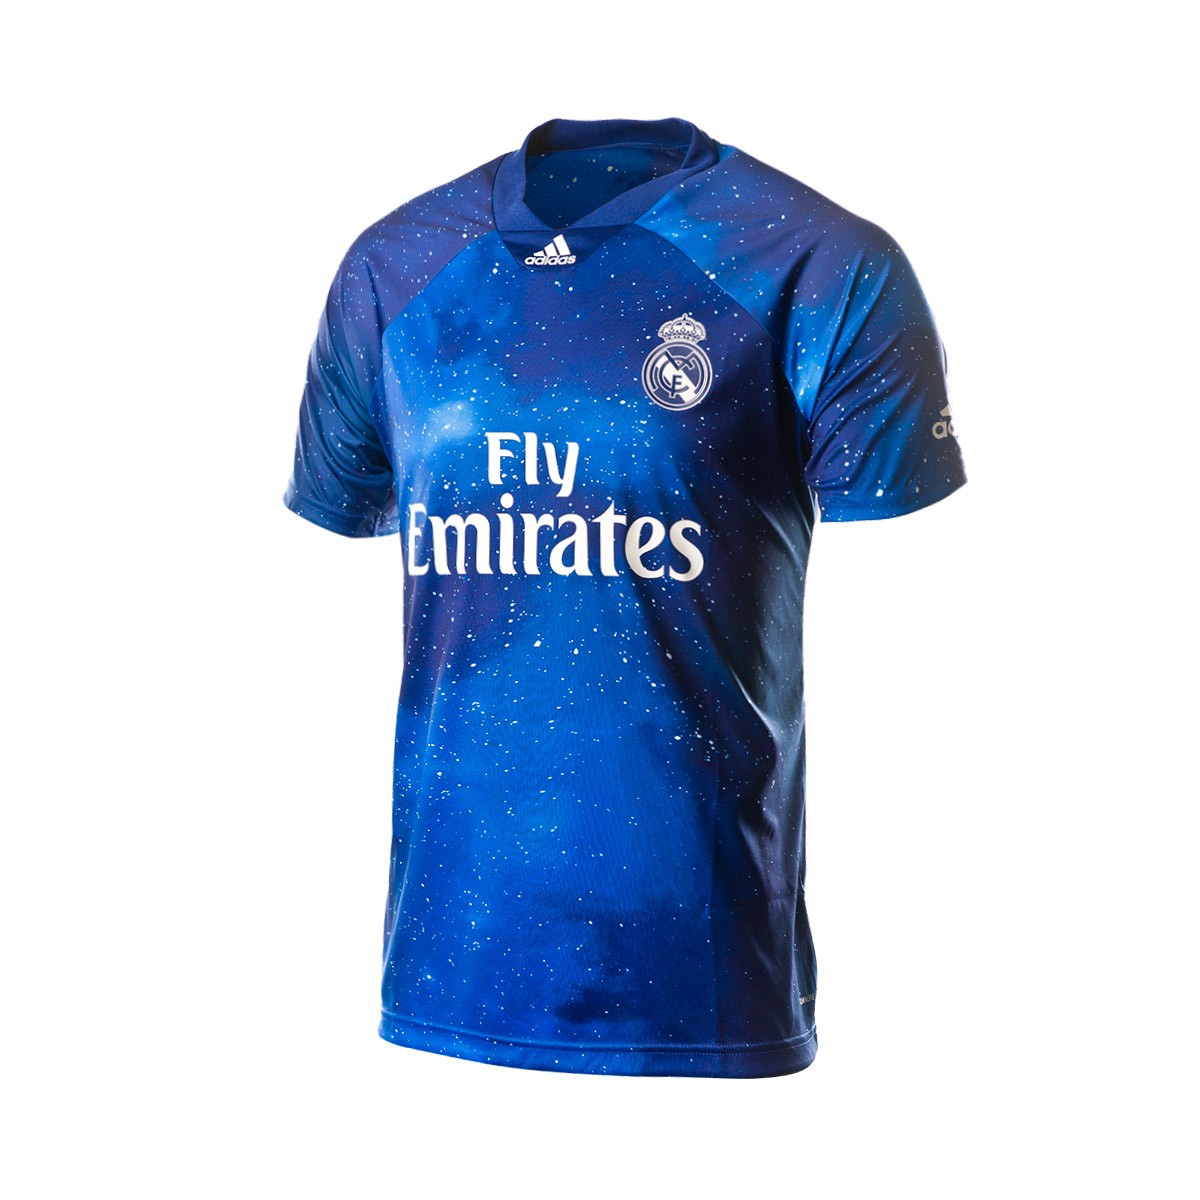 2a35fb3f1360f Jersey adidas Real Madrid EA 2018-2019 Blue - Football store Fútbol Emotion